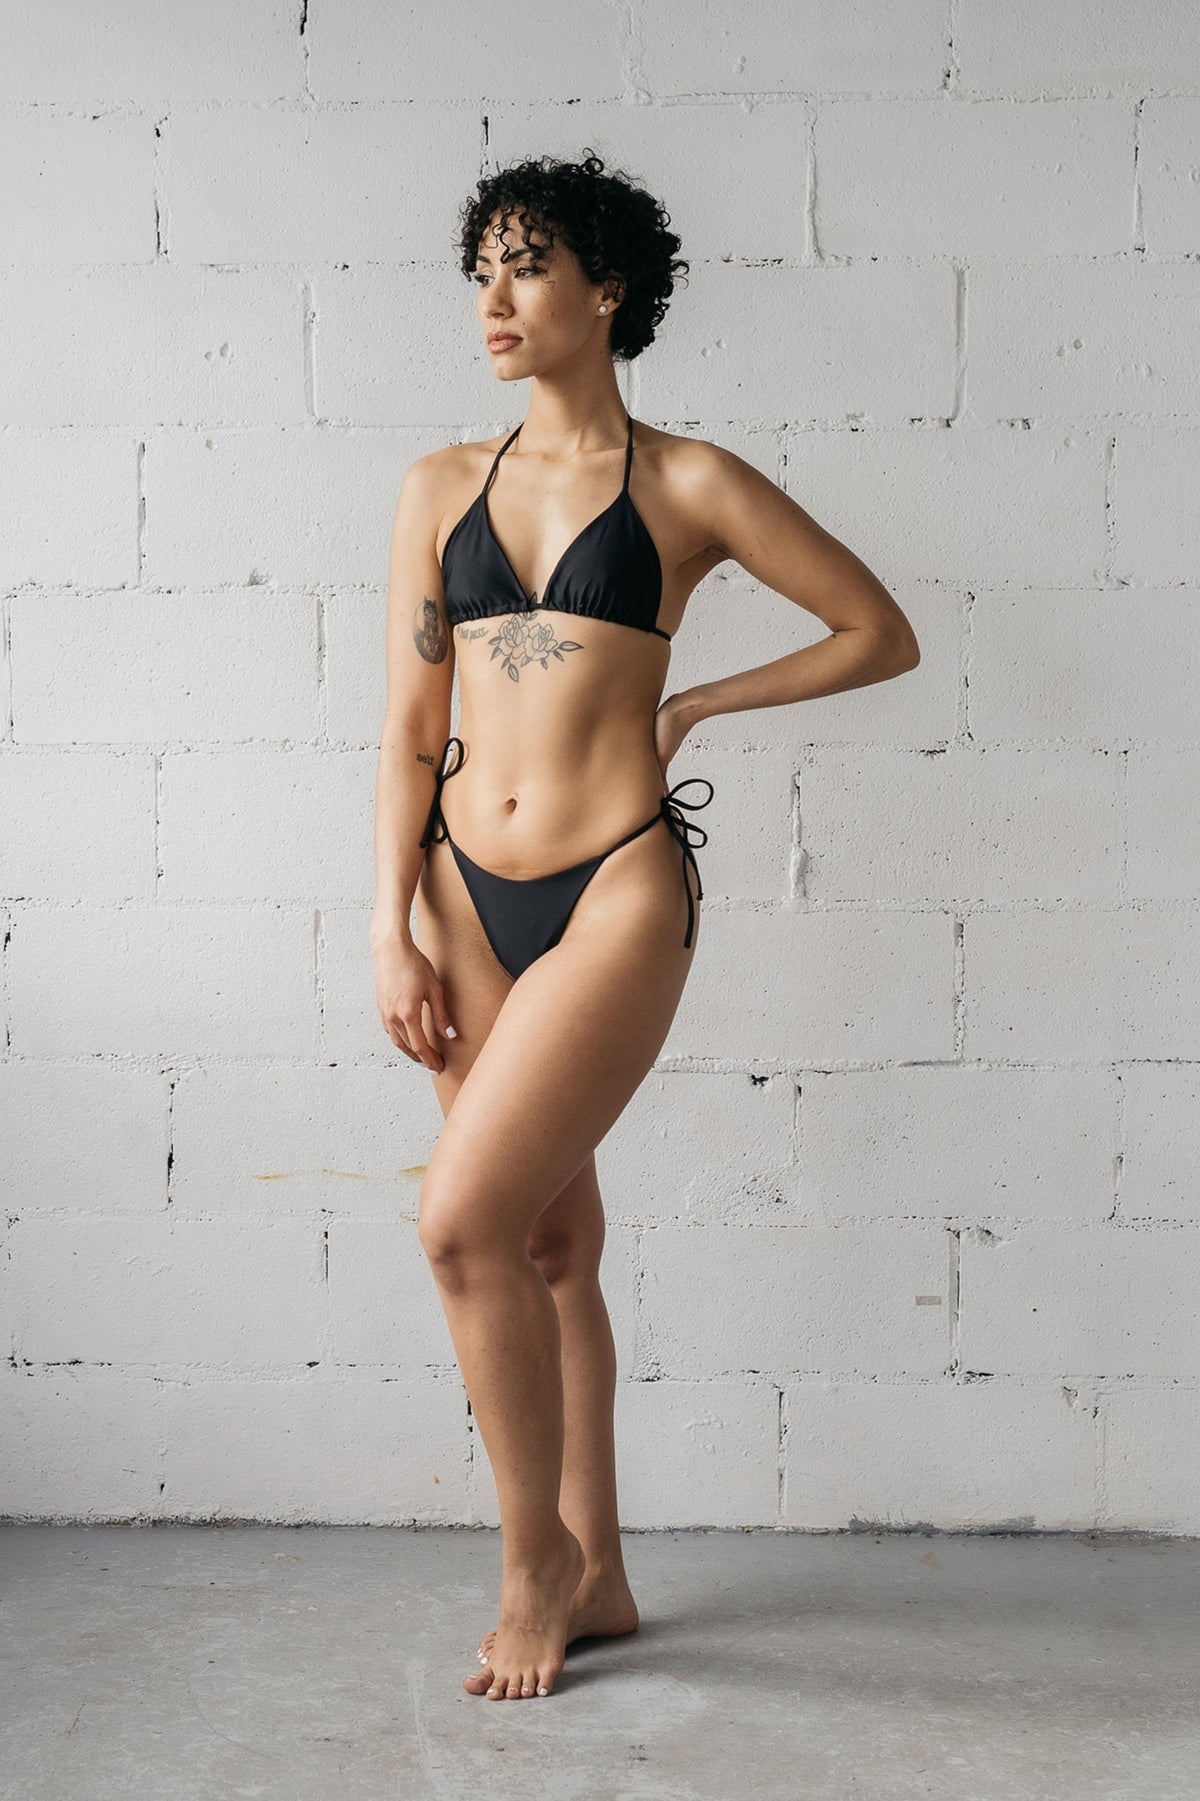 A woman standing with one hand on her hip and the other relaxed by her side wearing adjustable black triangle string bikini bottoms with a matching black triangle string bikini top.